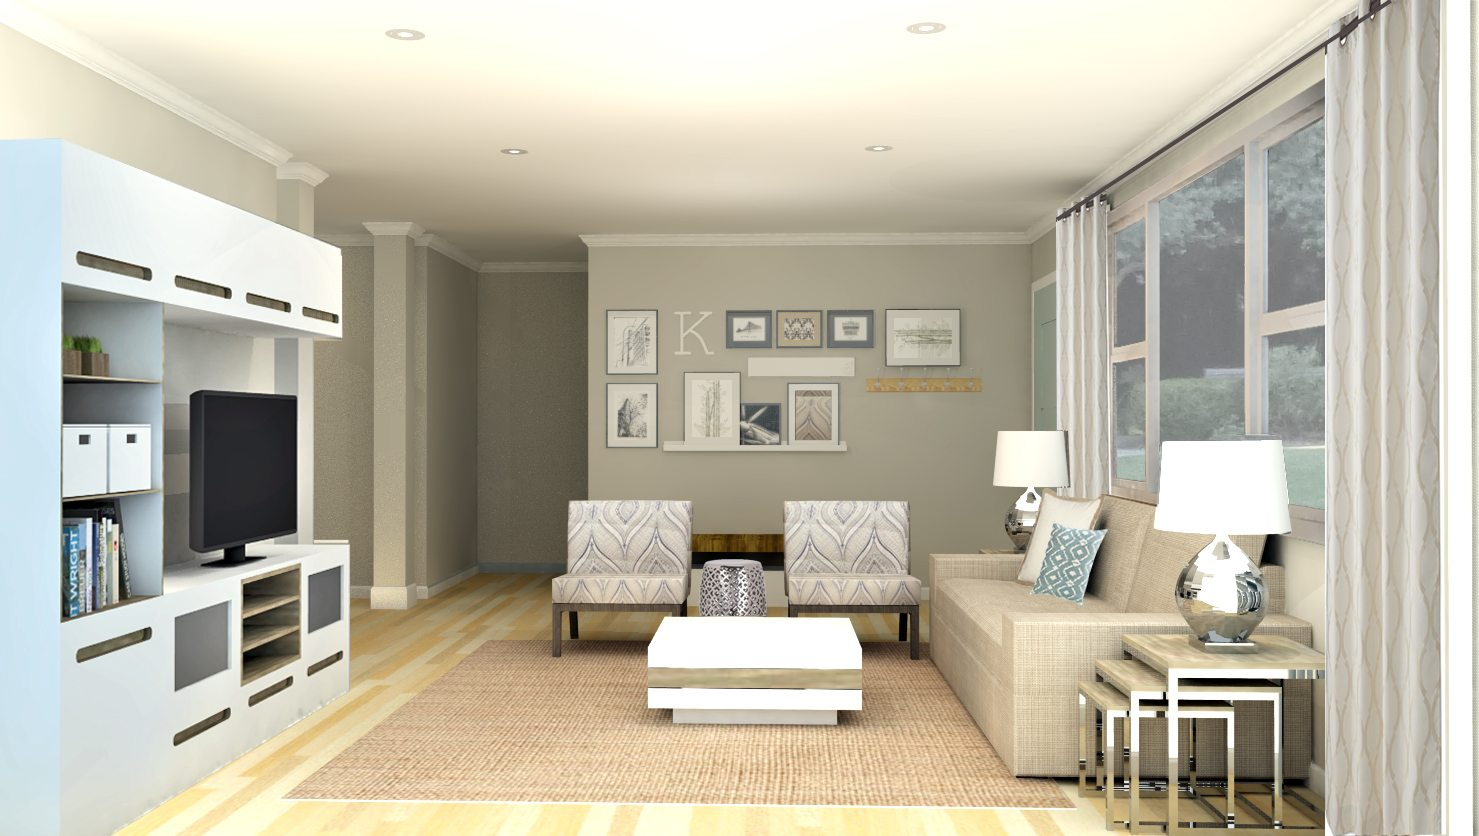 Interior Home Design Services From A Space To Call Home. Create A Virtual House Designcreate A Virtual Design House Model